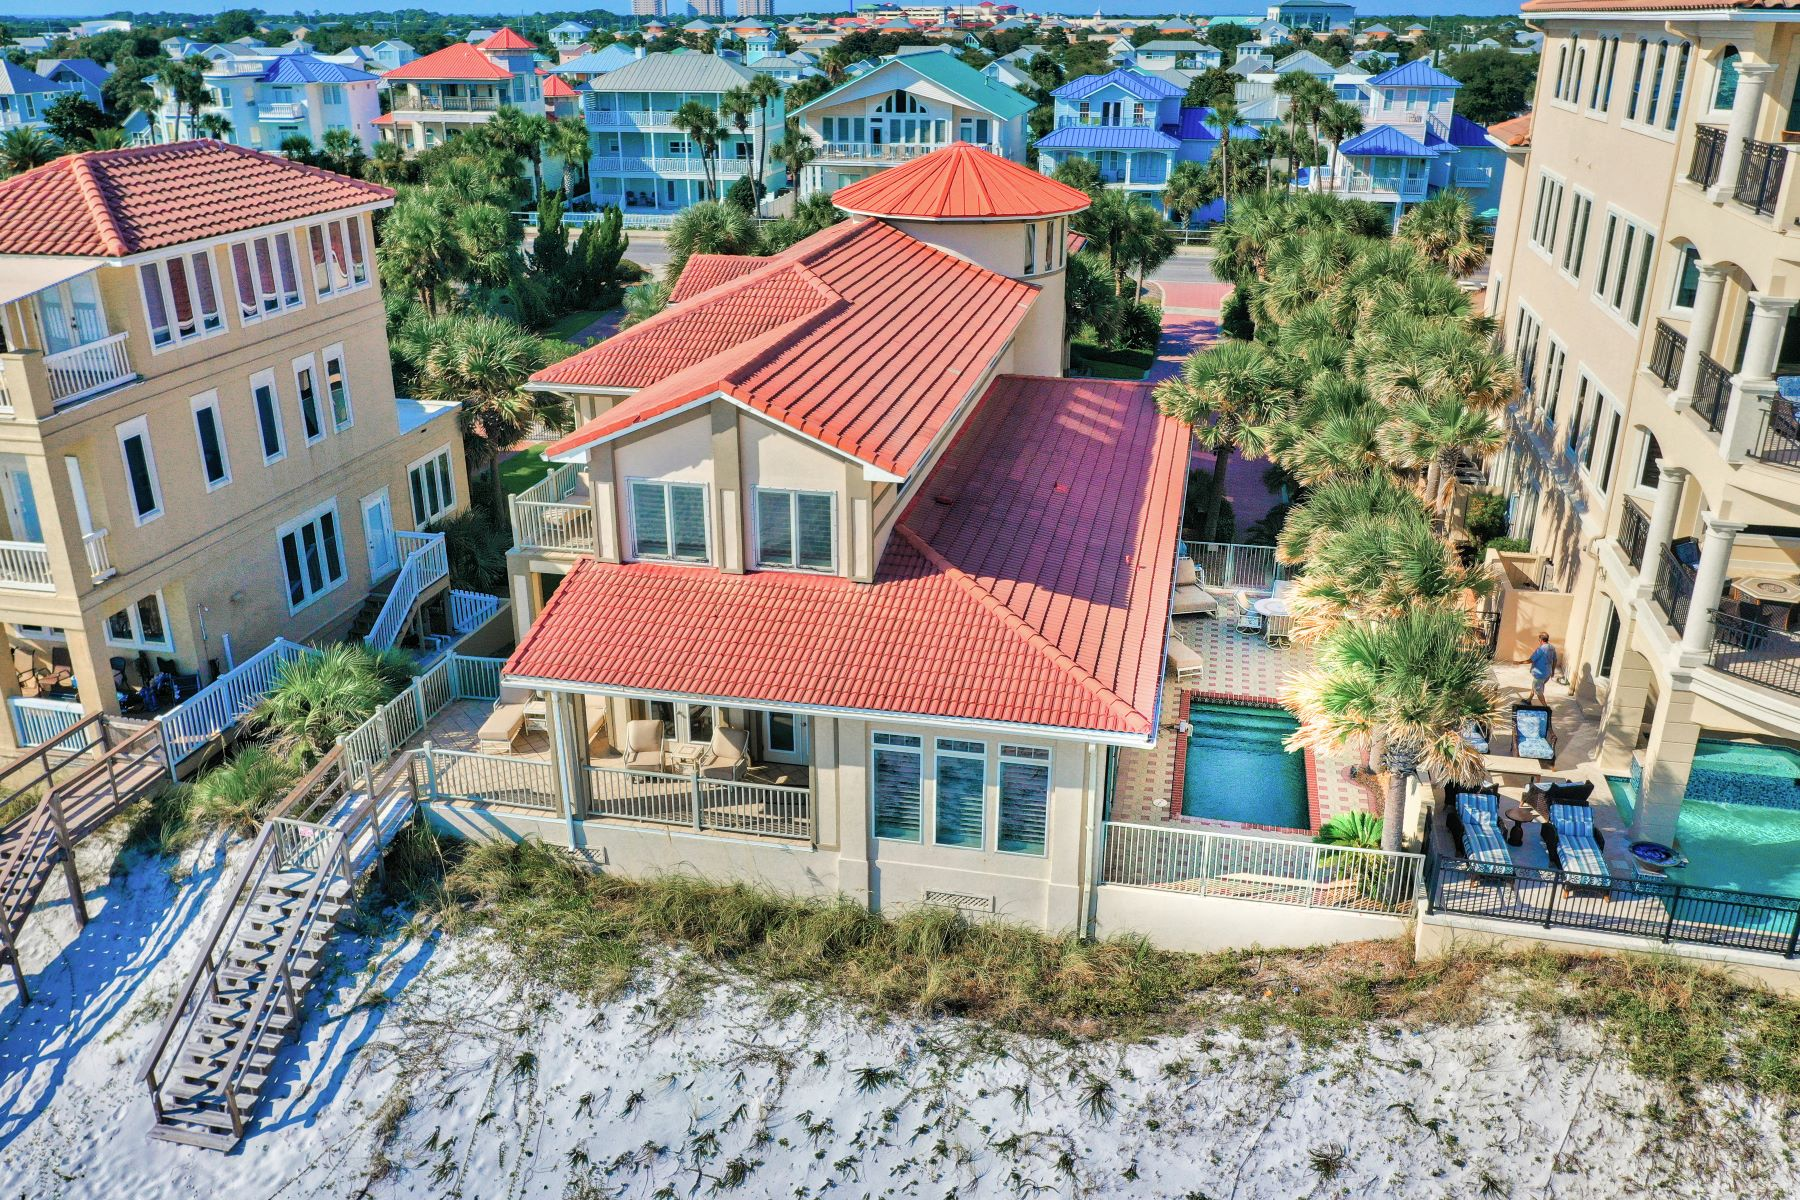 Single Family Homes için Satış at Gulf-Front Home with Private Pool on Oversized Lot 2988 Scenic Highway 98, Destin, Florida 32541 Amerika Birleşik Devletleri